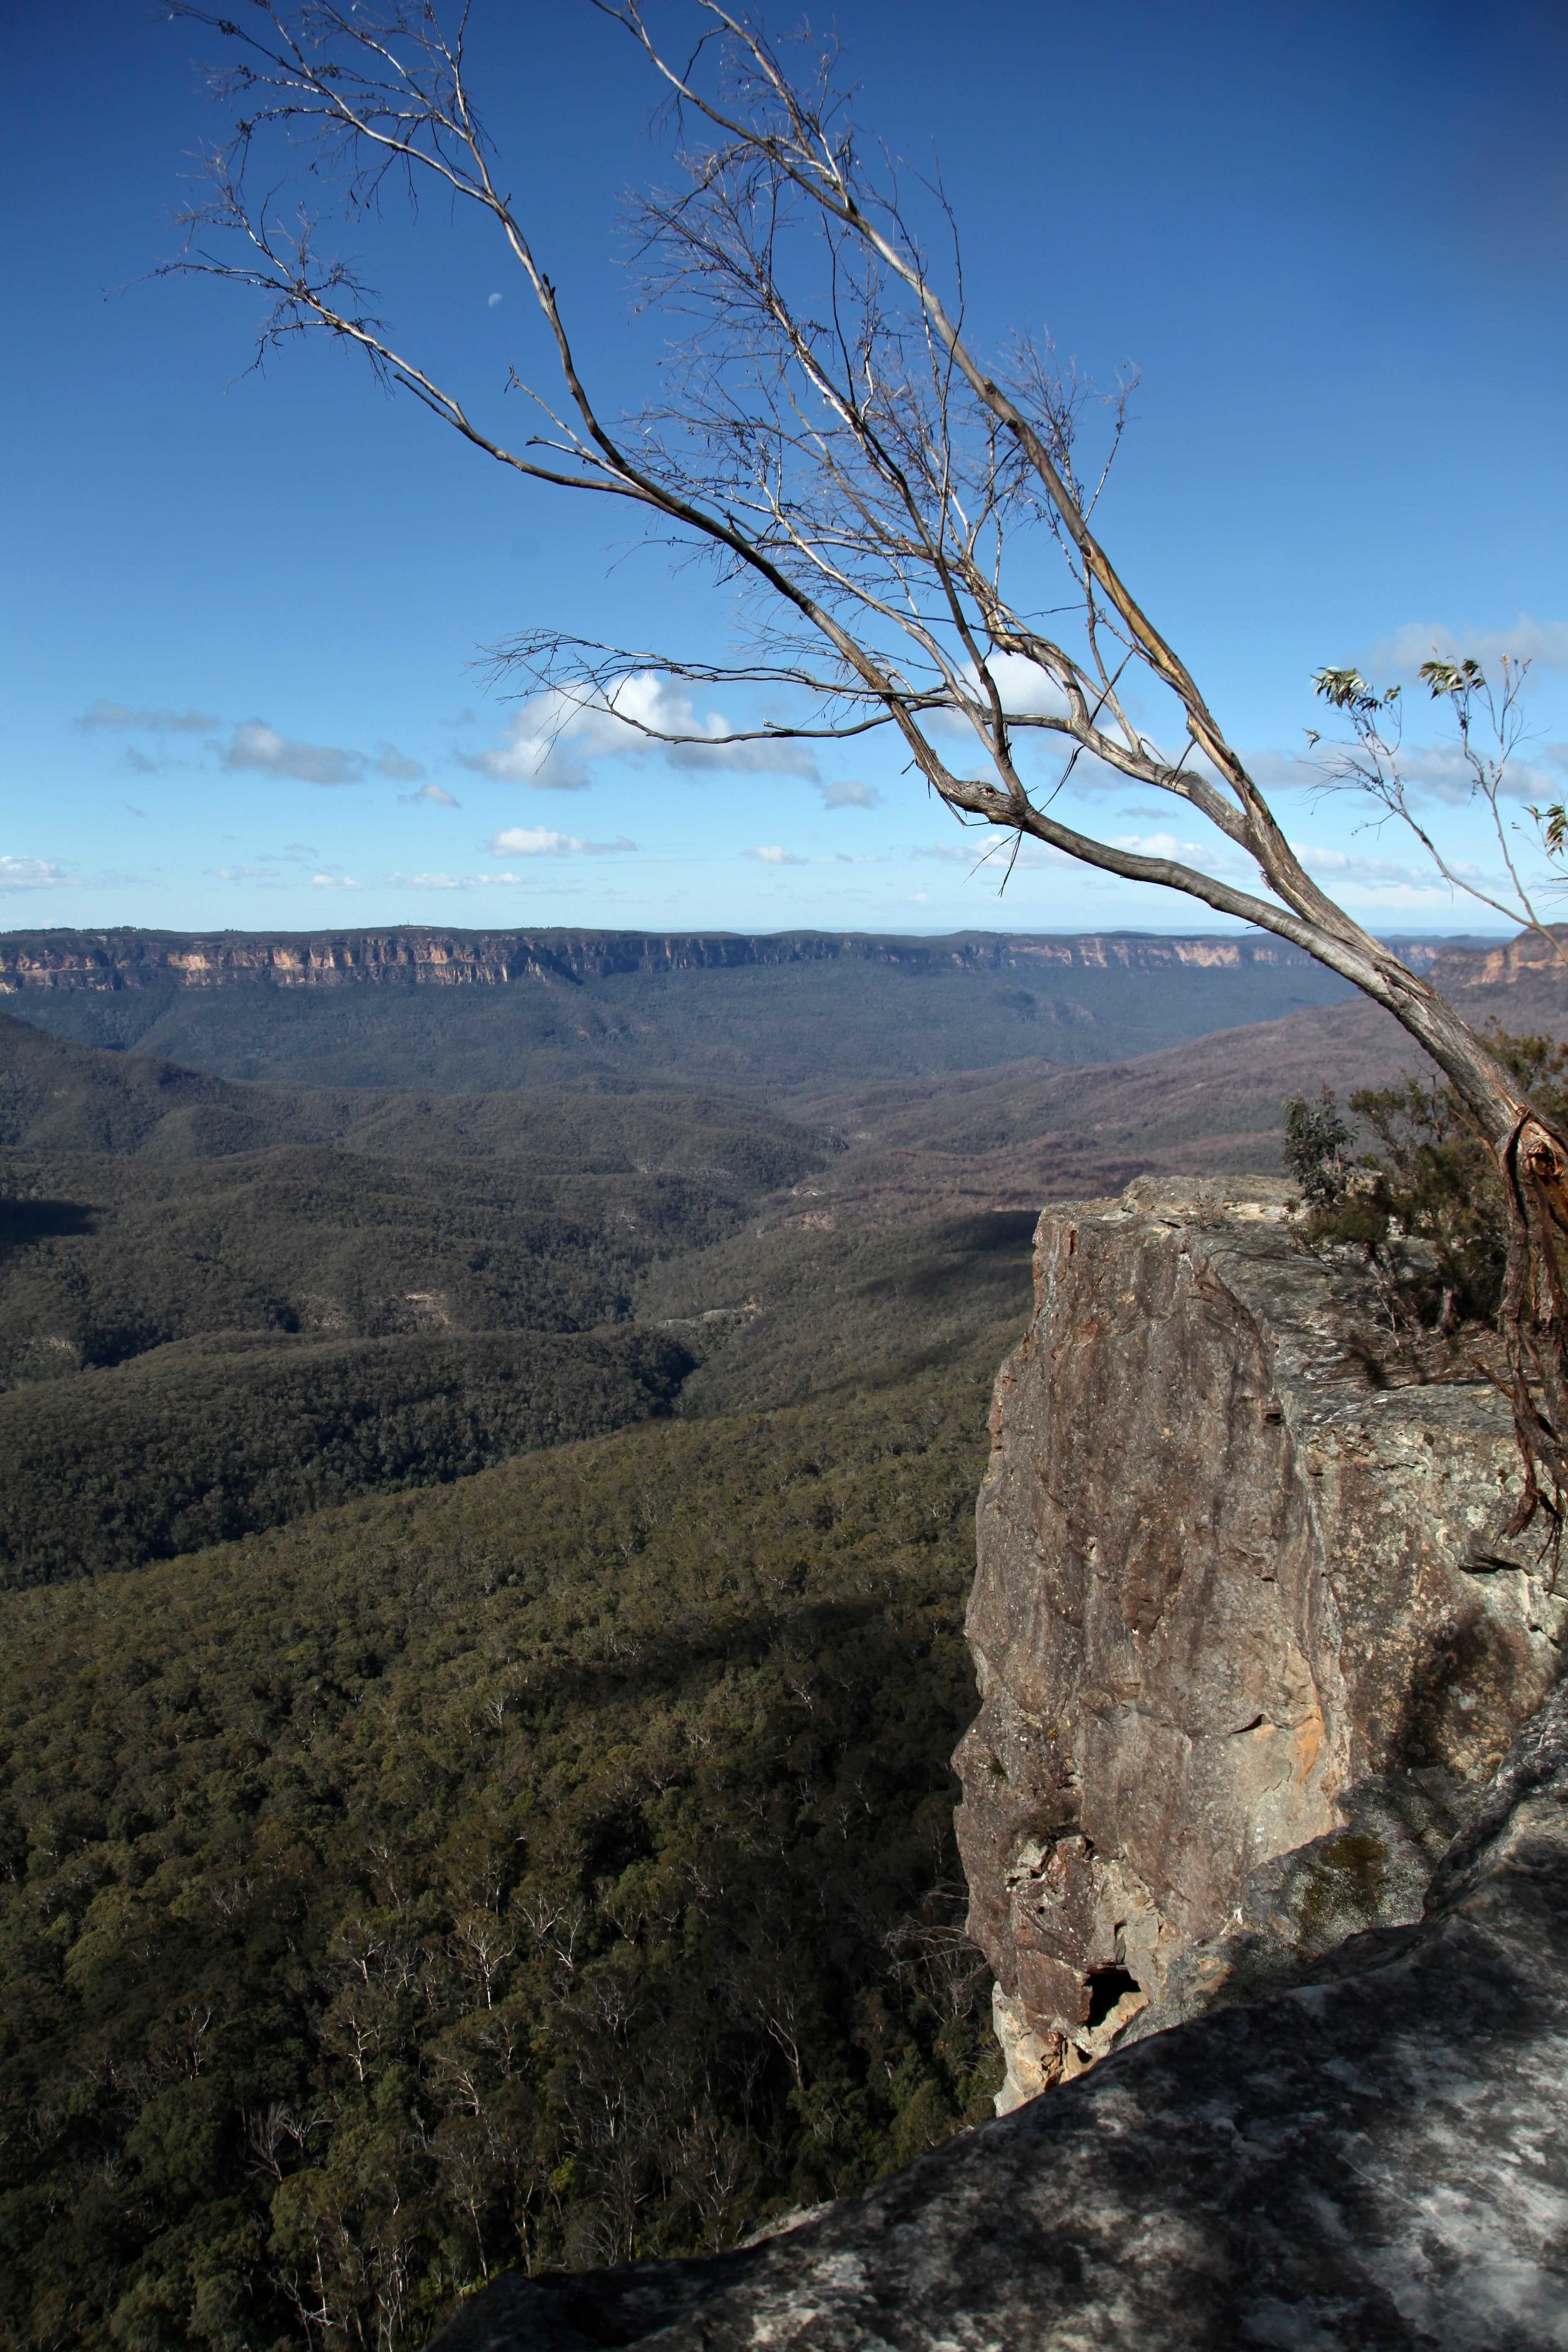 The Castle Head track is a 2.5km walk starting from Narrow Neck in the Blue Mountains.